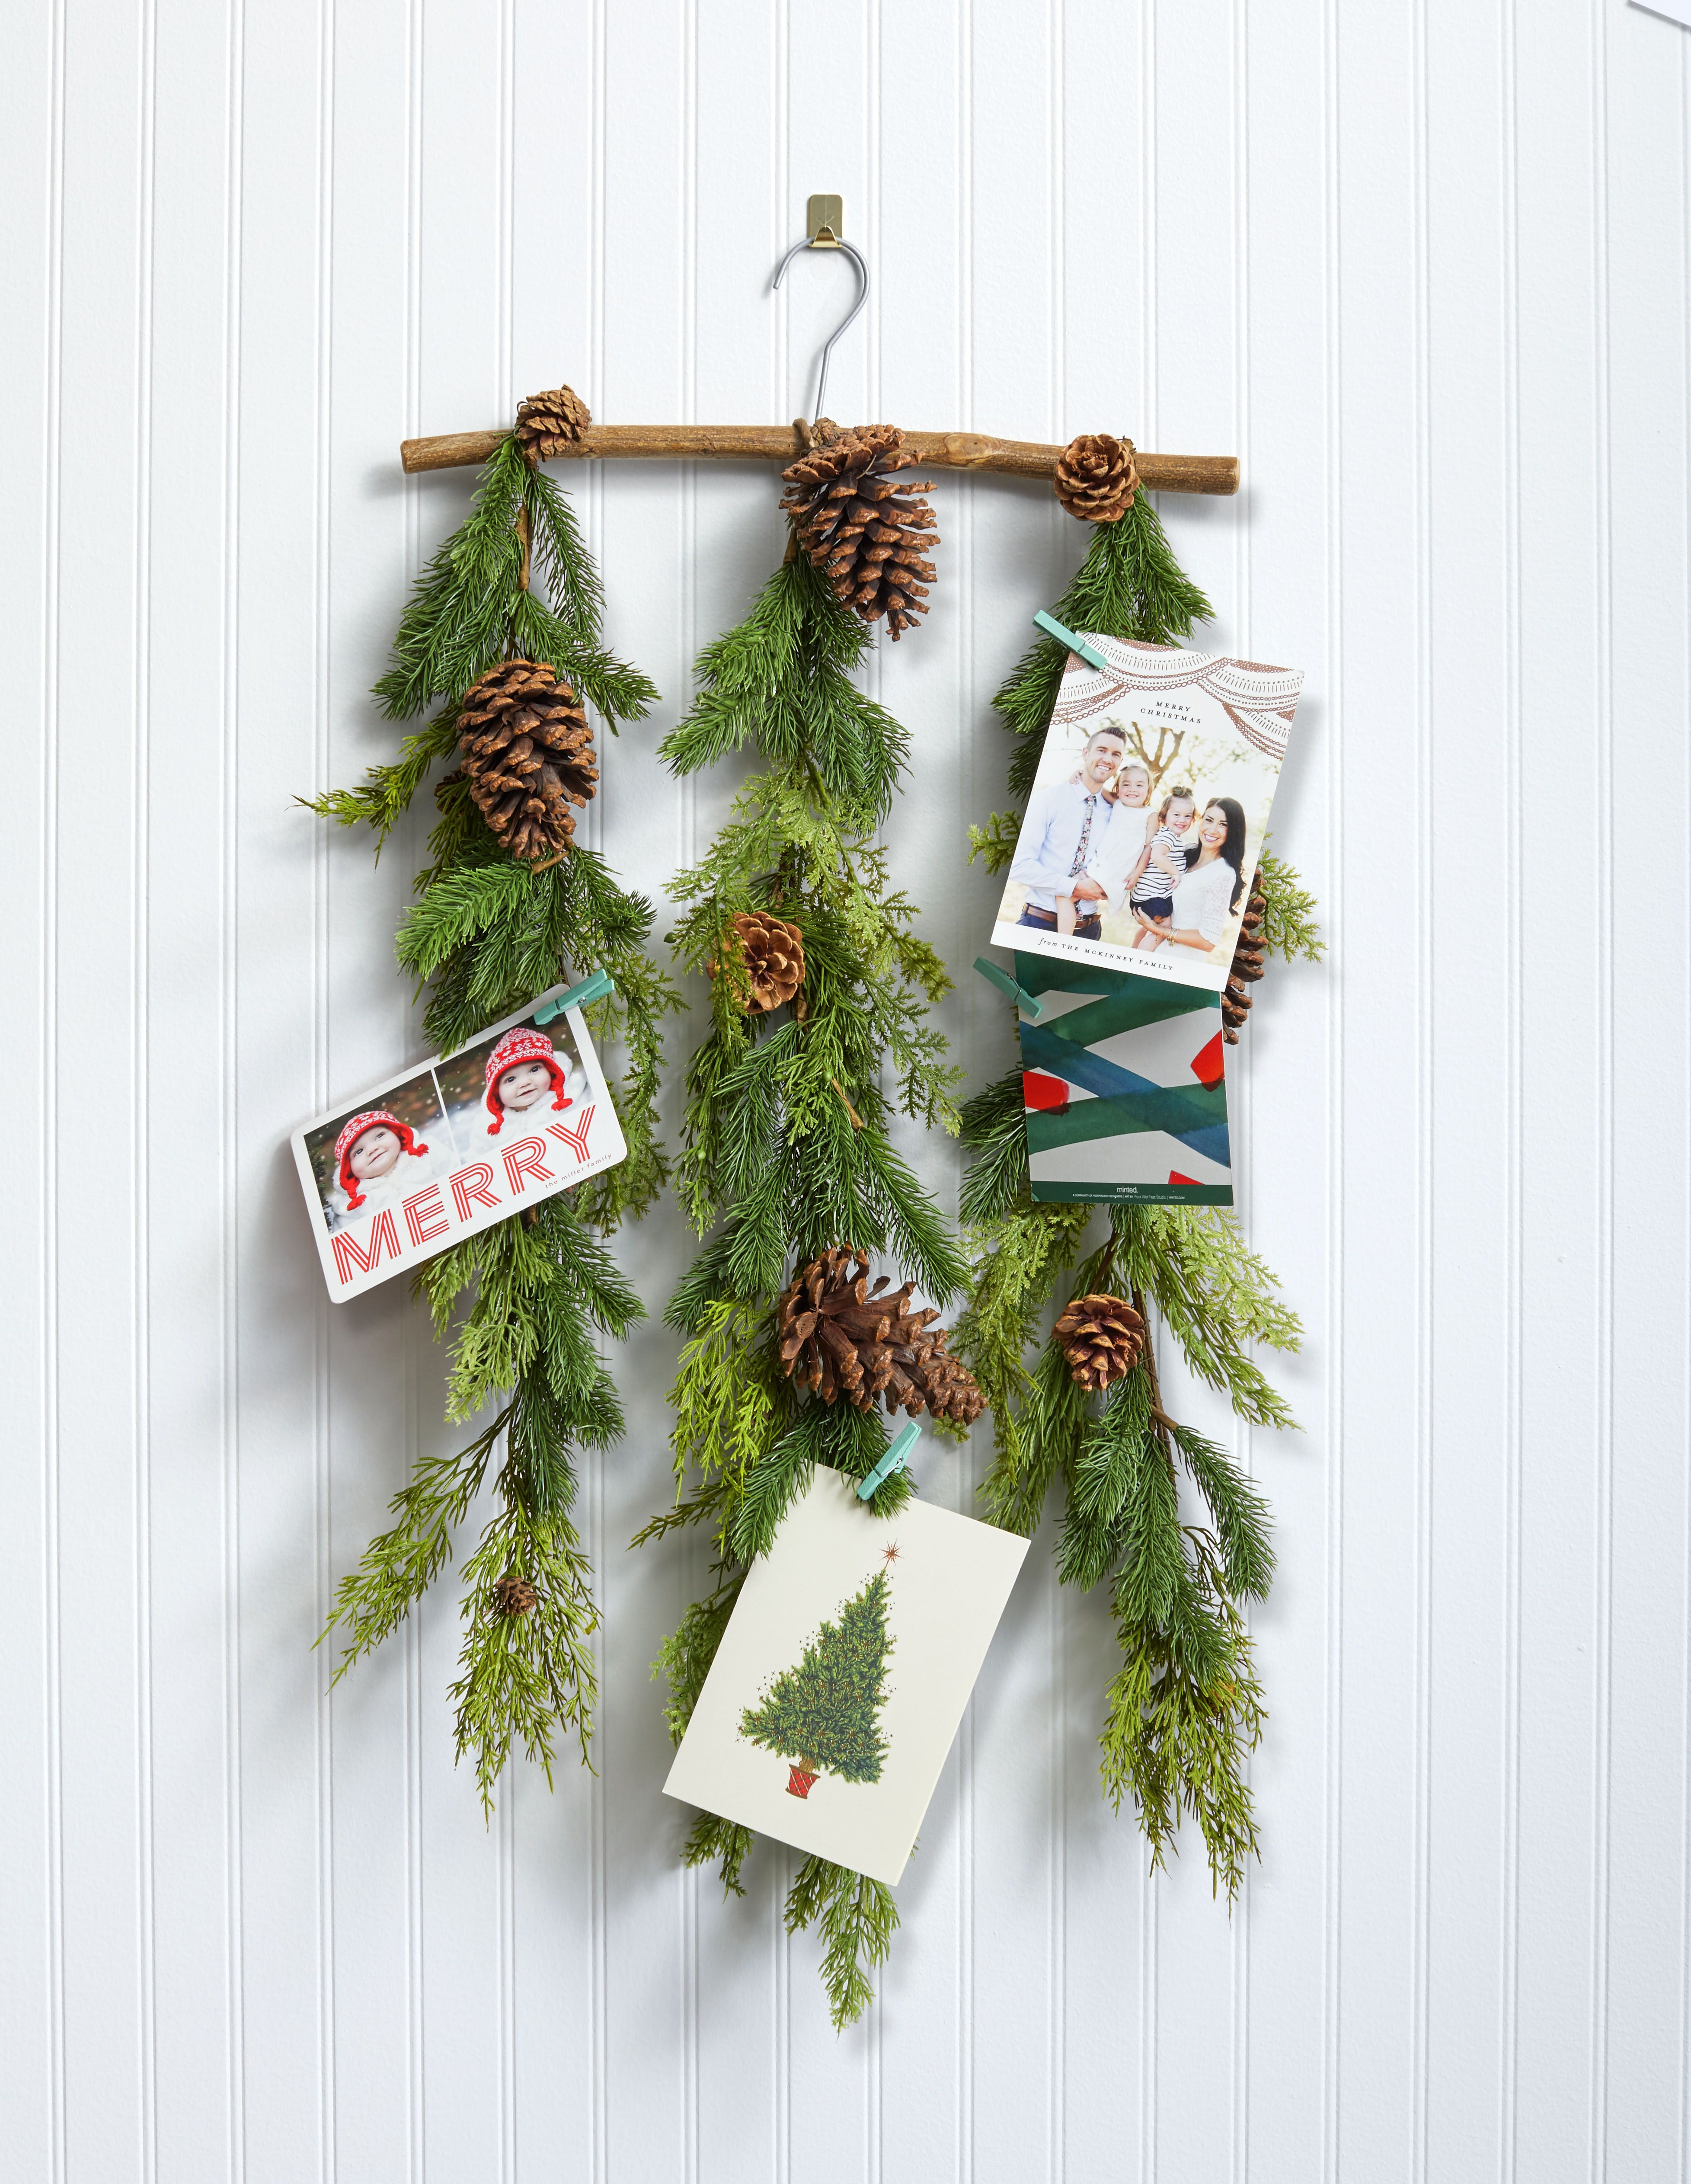 53 Easy Diy Christmas Decorations 2020 Homemade Holiday Decorations